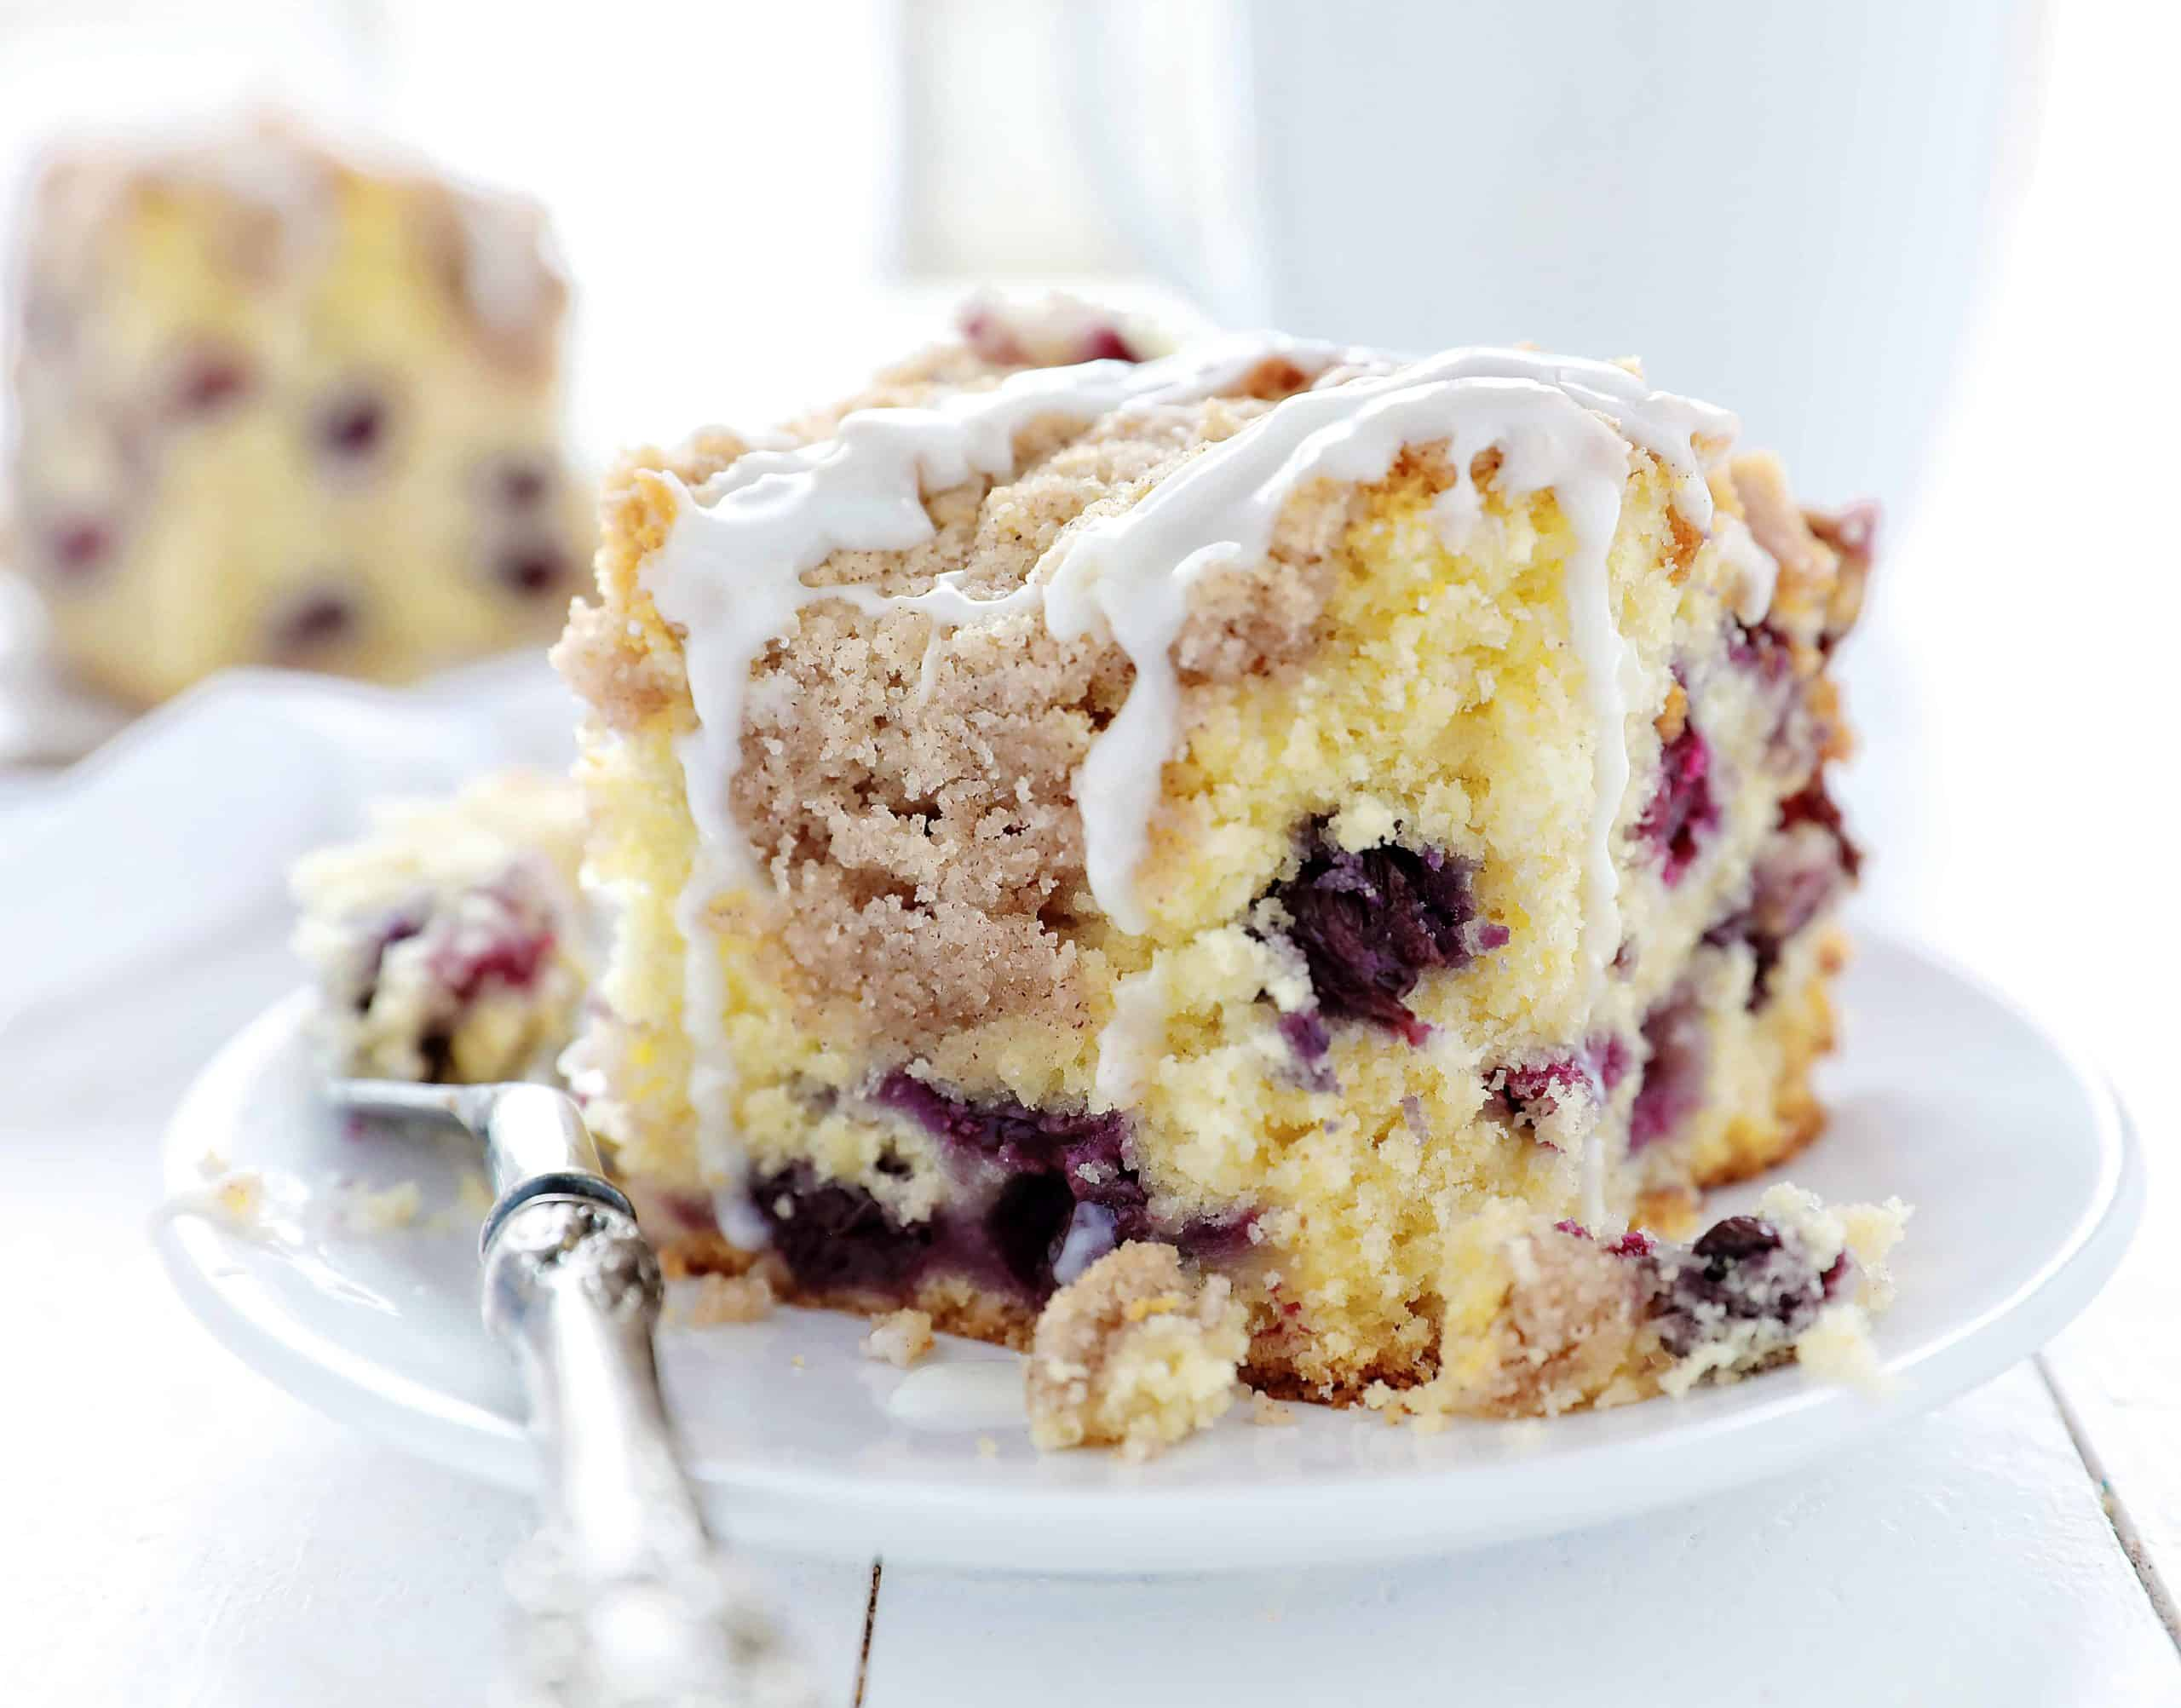 One Piece of Blueberry Coffee Cake on White Plate